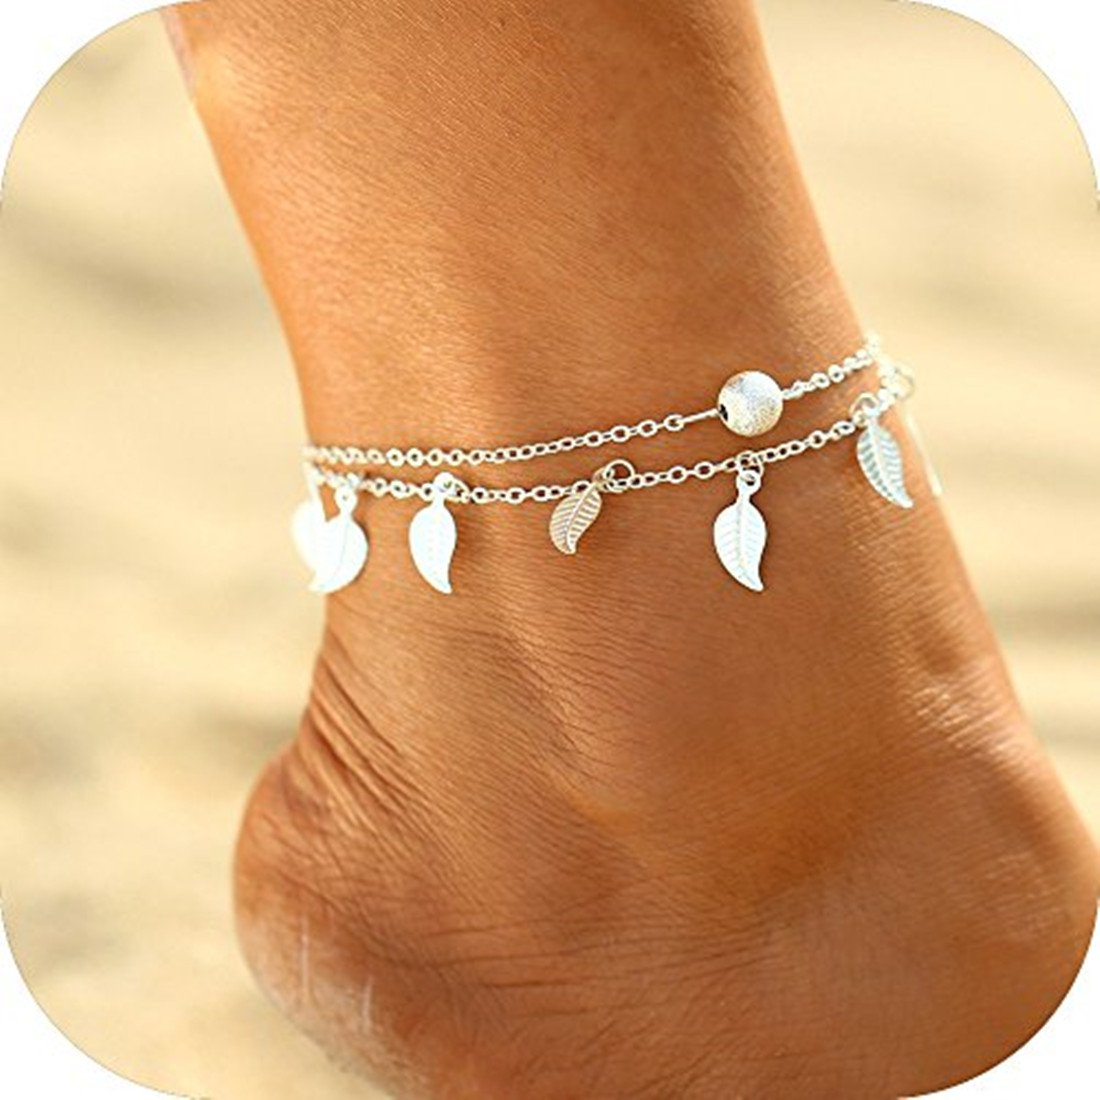 SwanElegant Anklet Ankle Foot Bracelet Chain Jewelry,Gold Sea Beach Handmade Exquisite Ankle Foot Bracelet Chain Jewelry Gifts for Women Girls